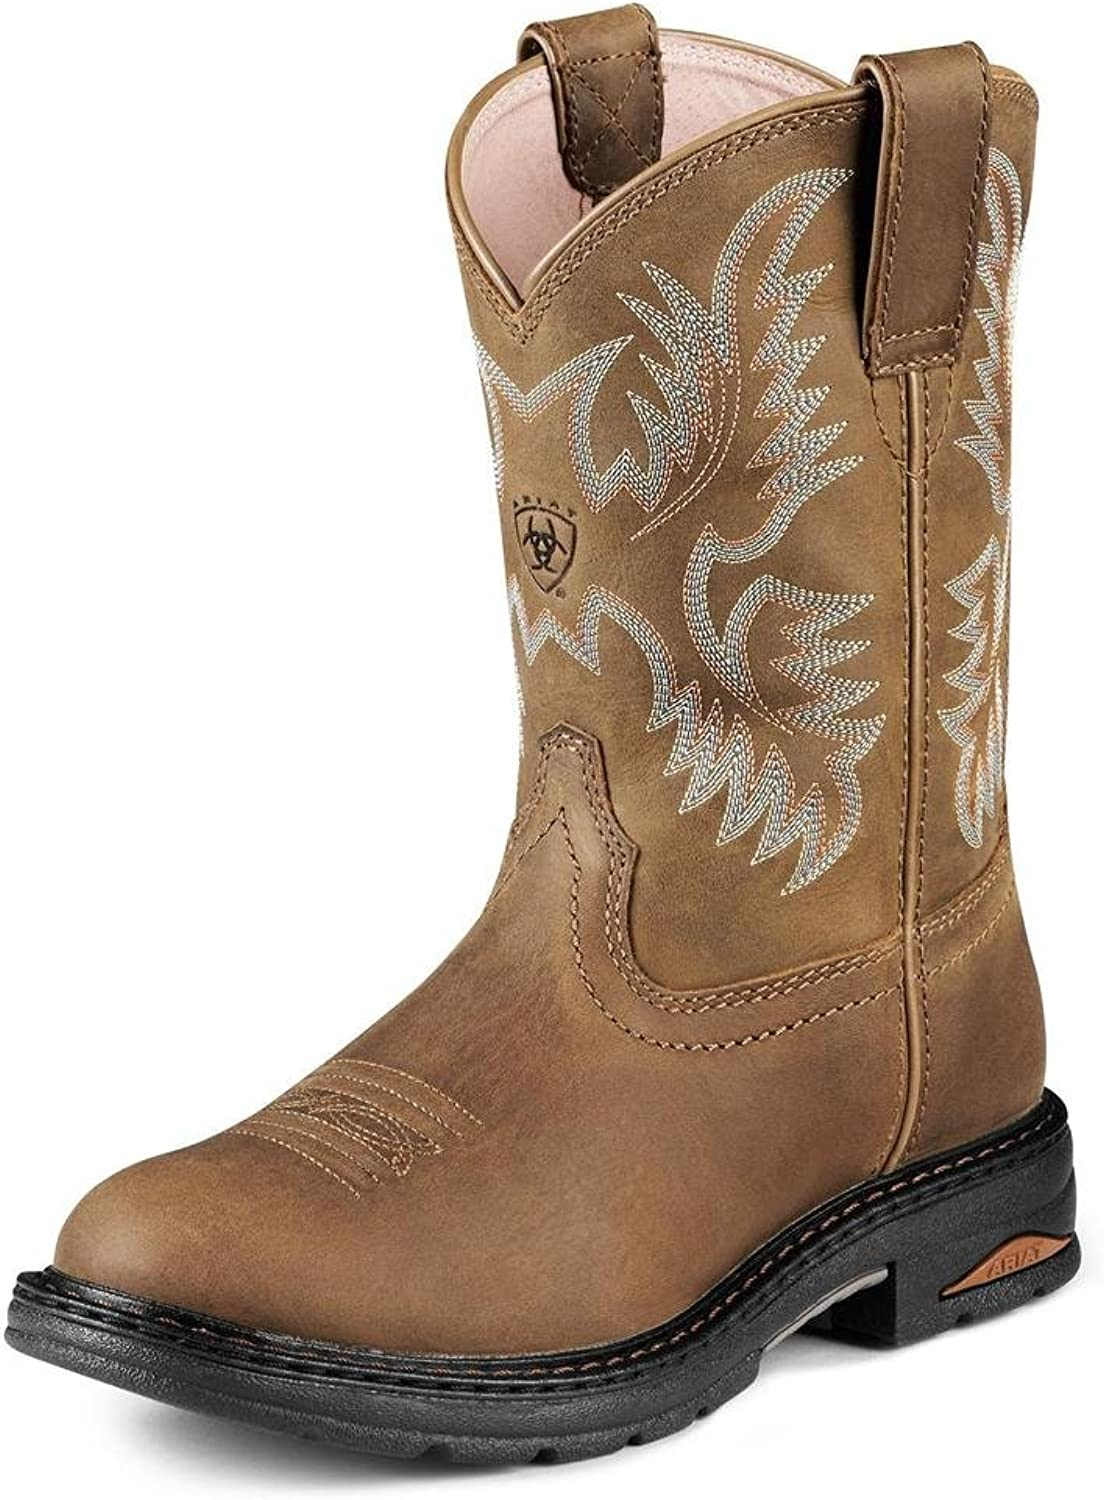 Ariat Womens Tracey Pull On Composite Toe Boots 8634B075-7.5 Medium